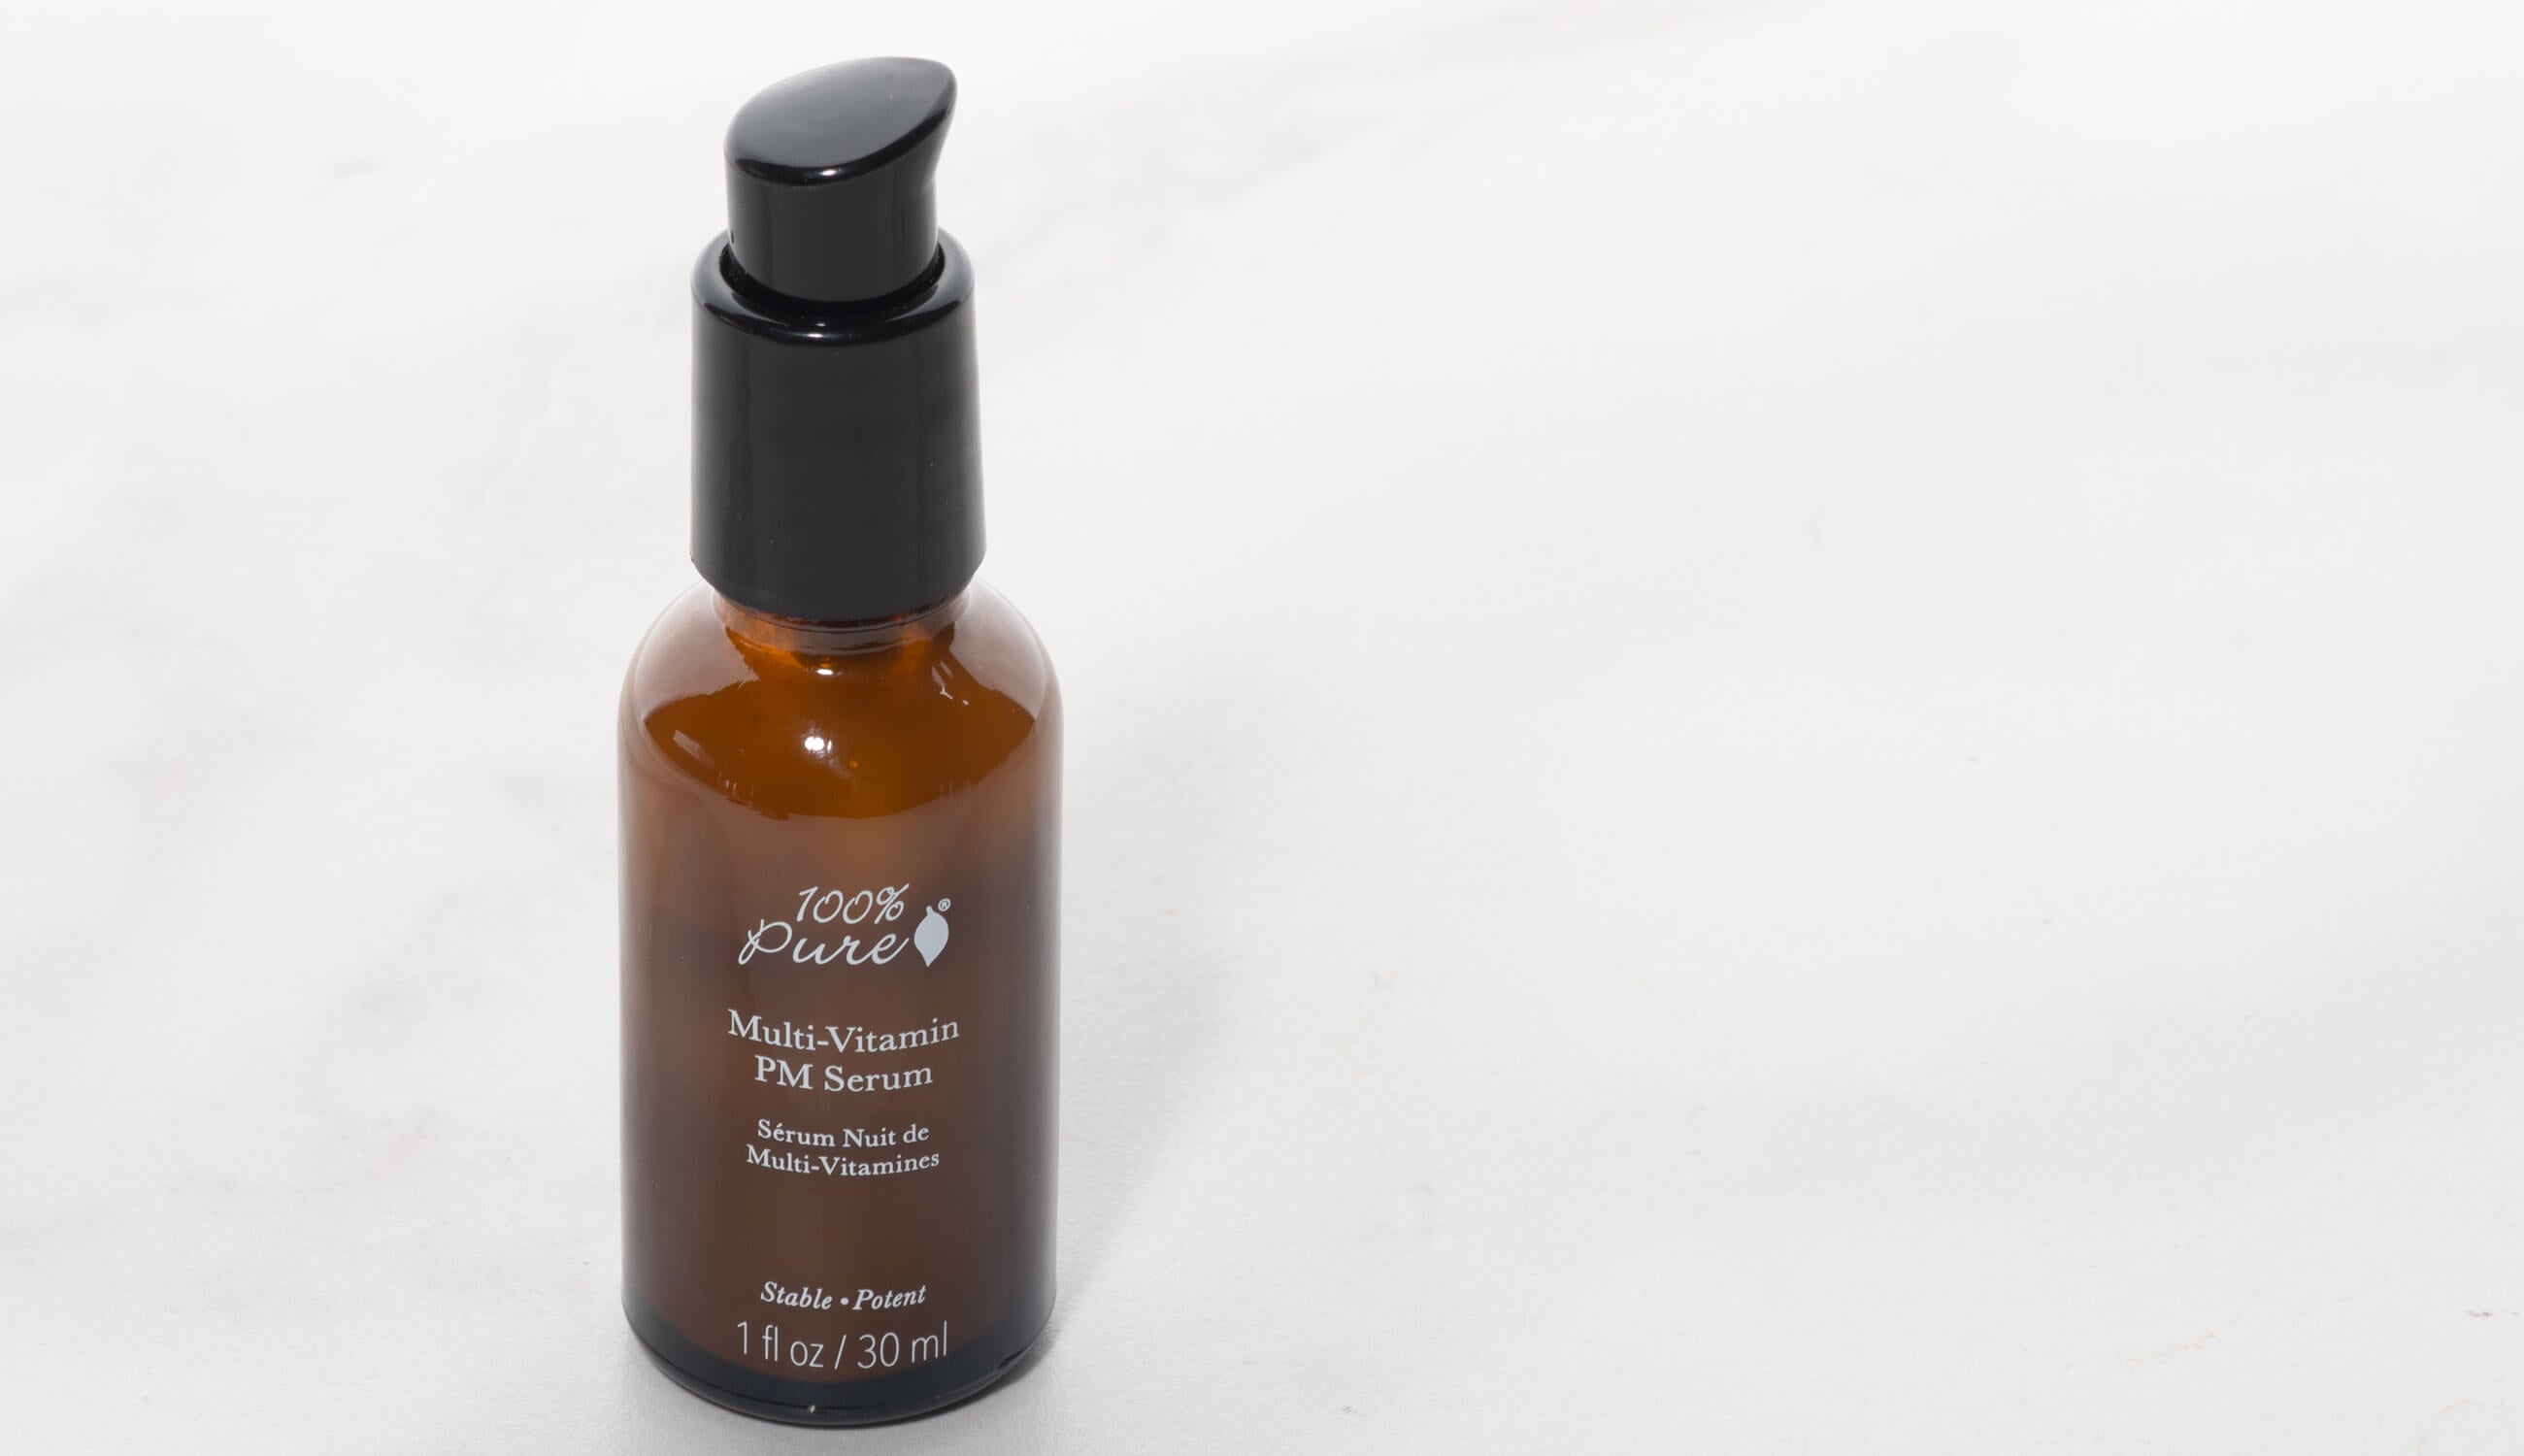 100% PURE Multi-Vitamins + Antioxidants Potent PM Serum